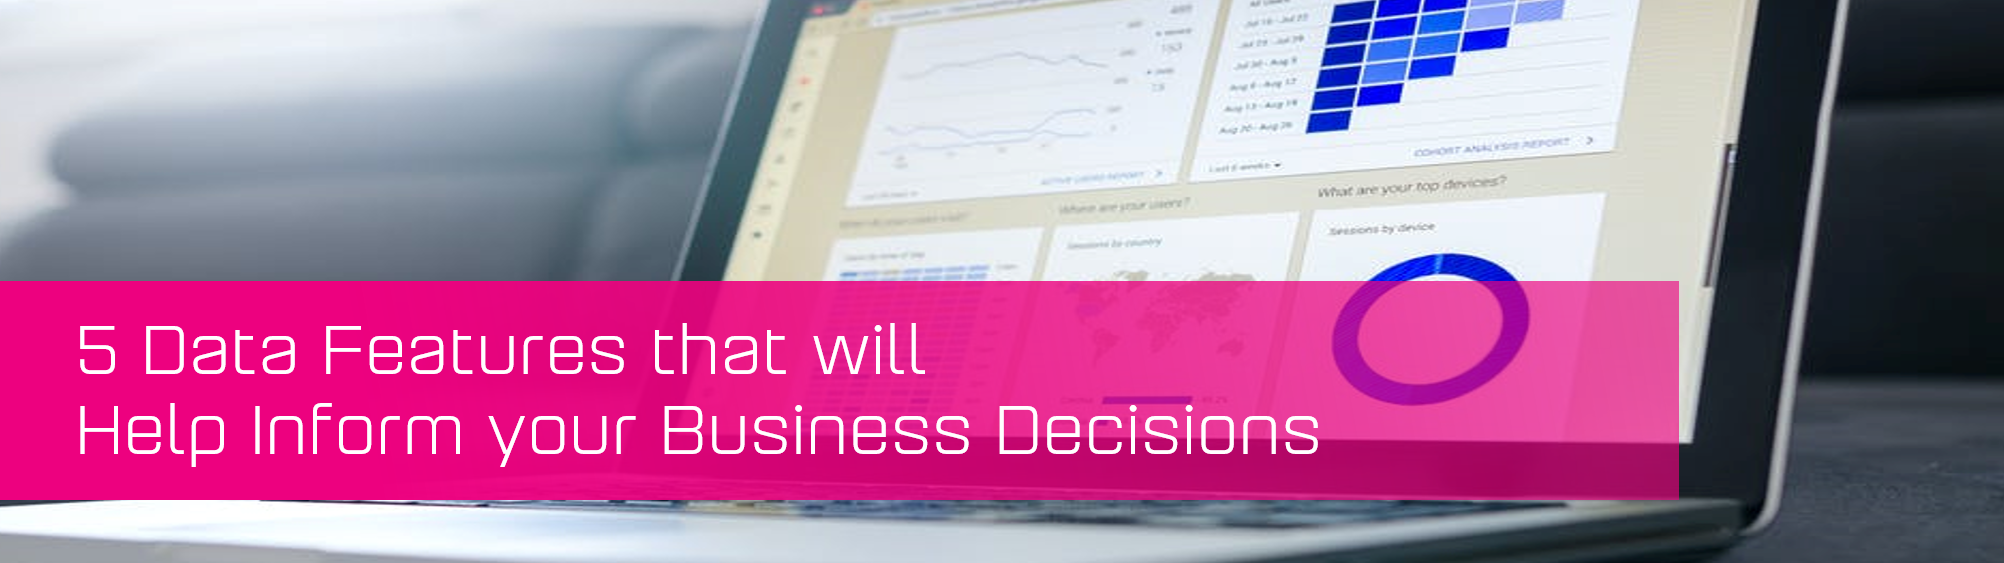 KCS SA - Blog - 5 Data features for business decisions banner